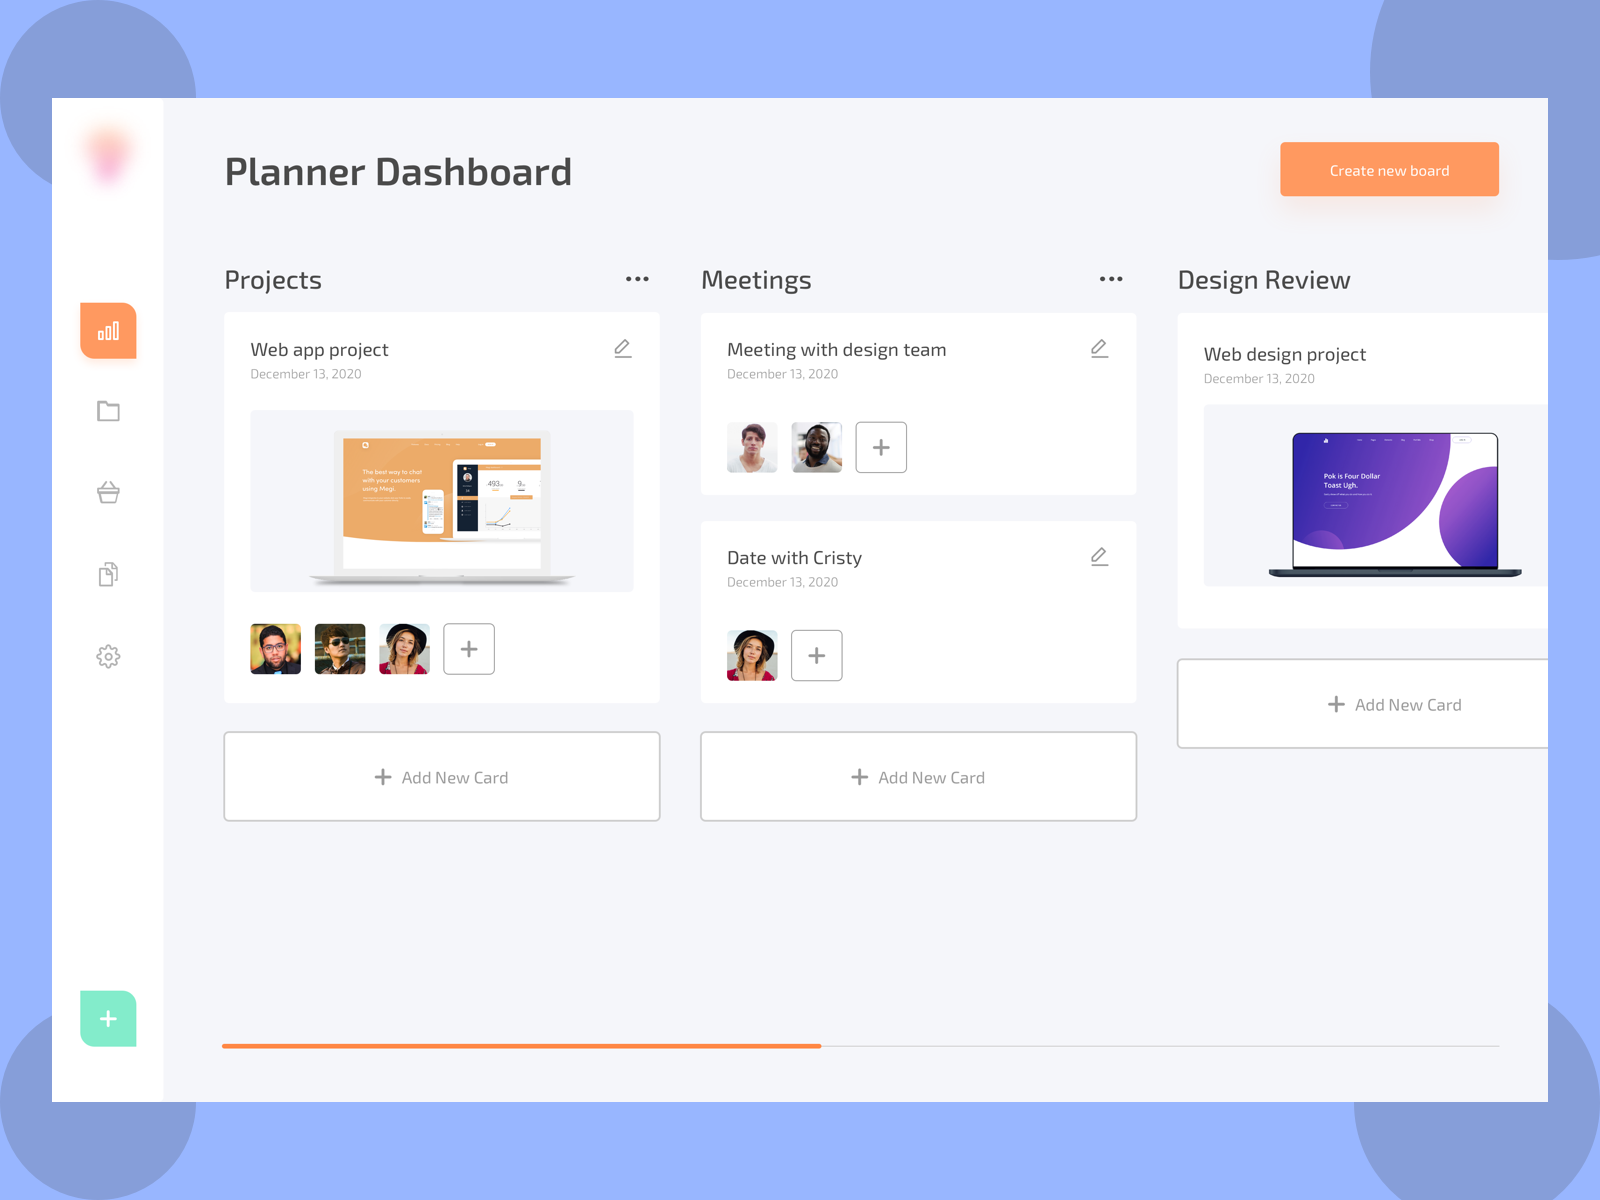 Instagram shot planner dashboard concept (With images